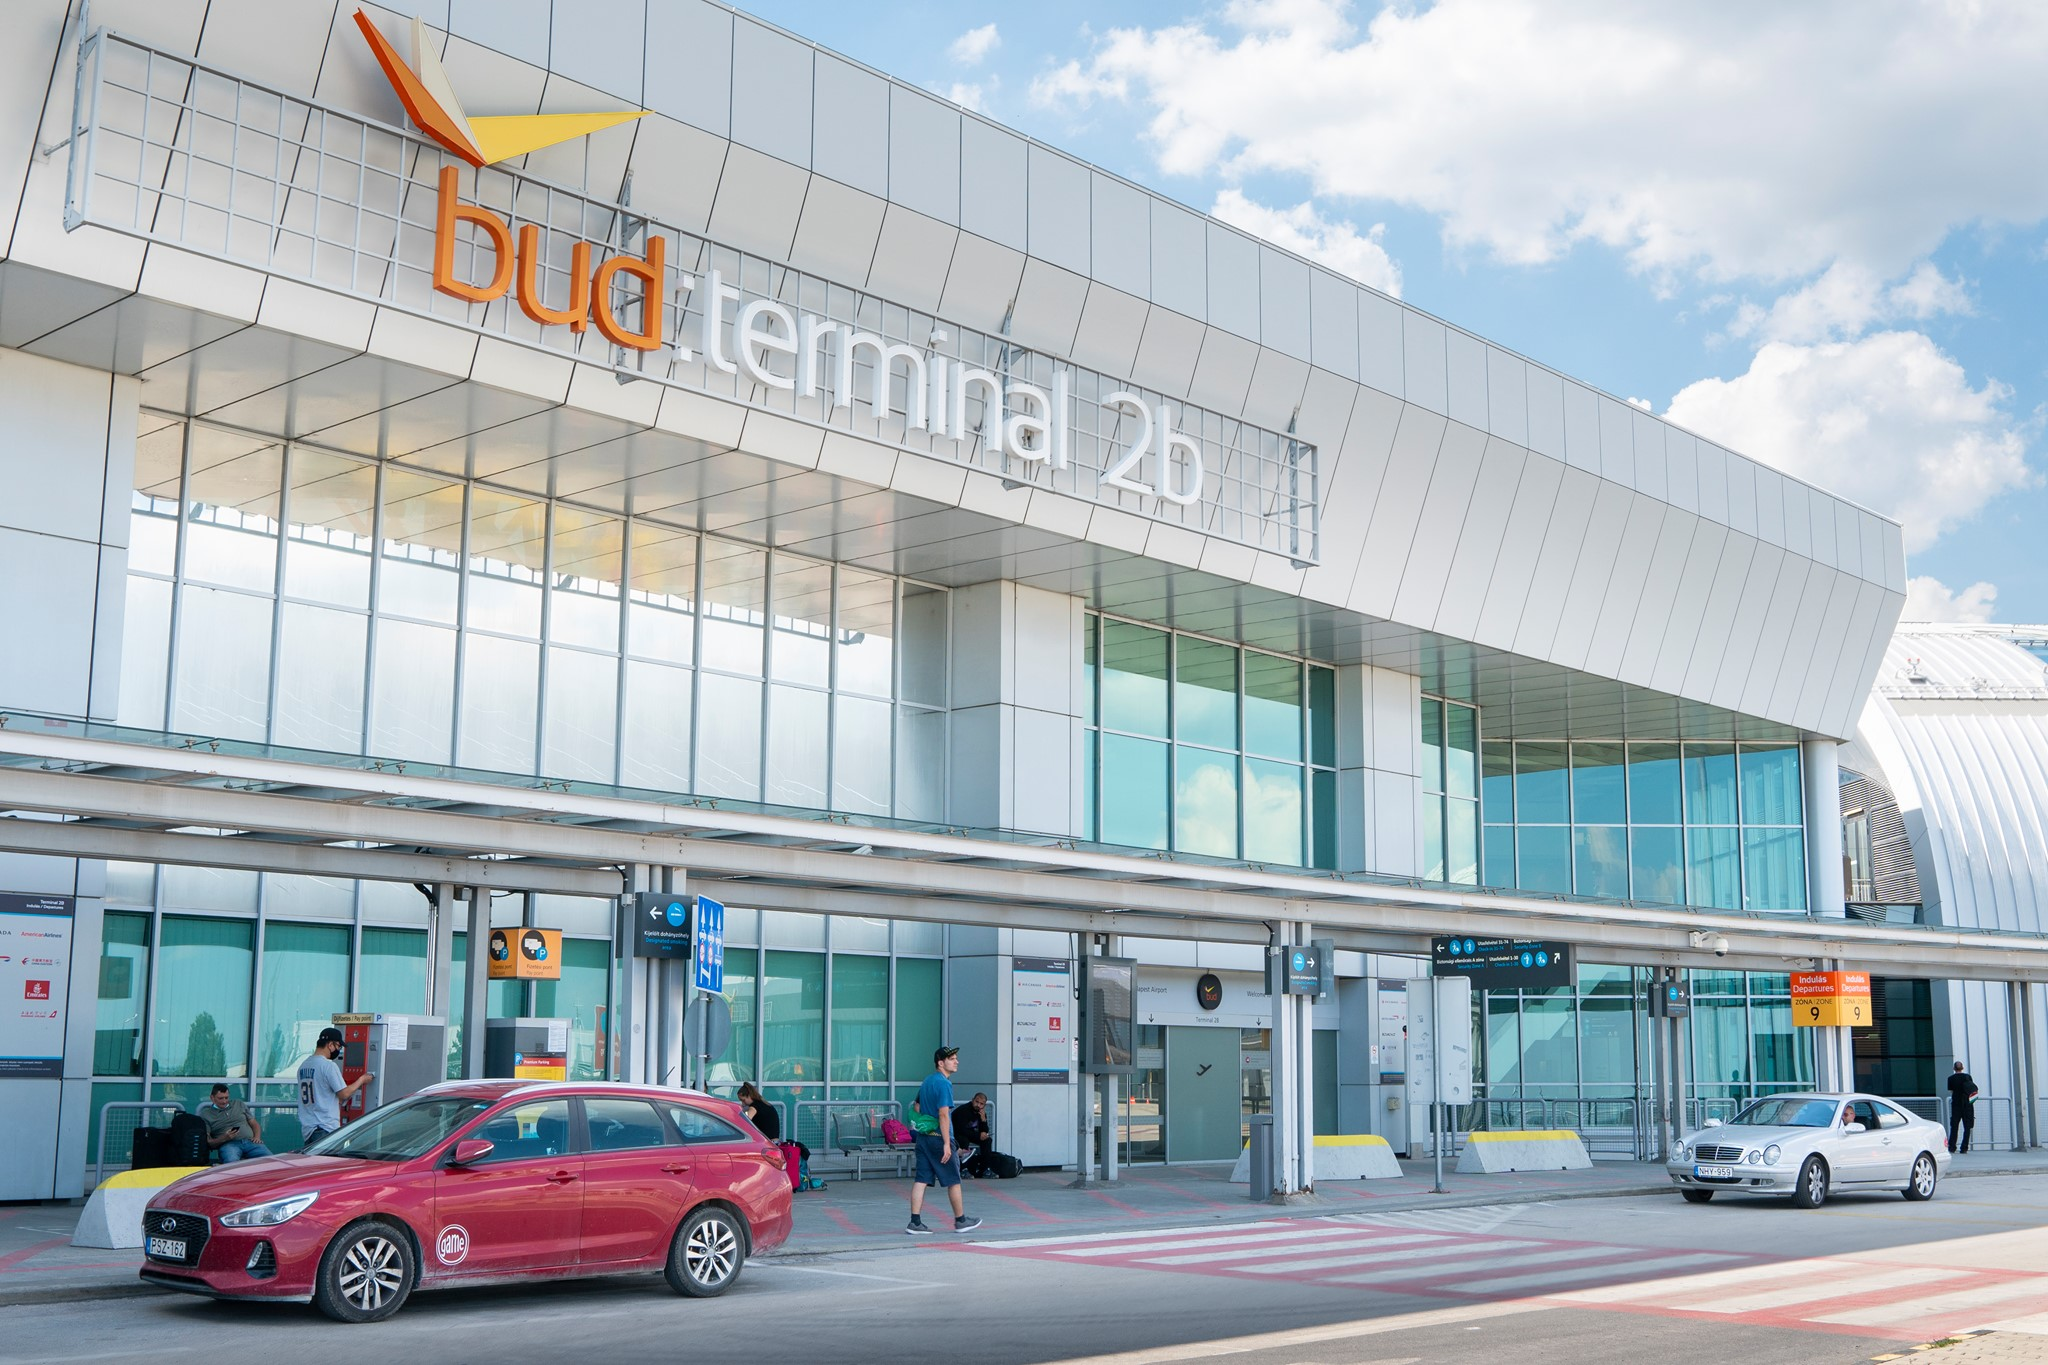 Budapest Airport Report: Euro 167 Million Developments Over 2 Years